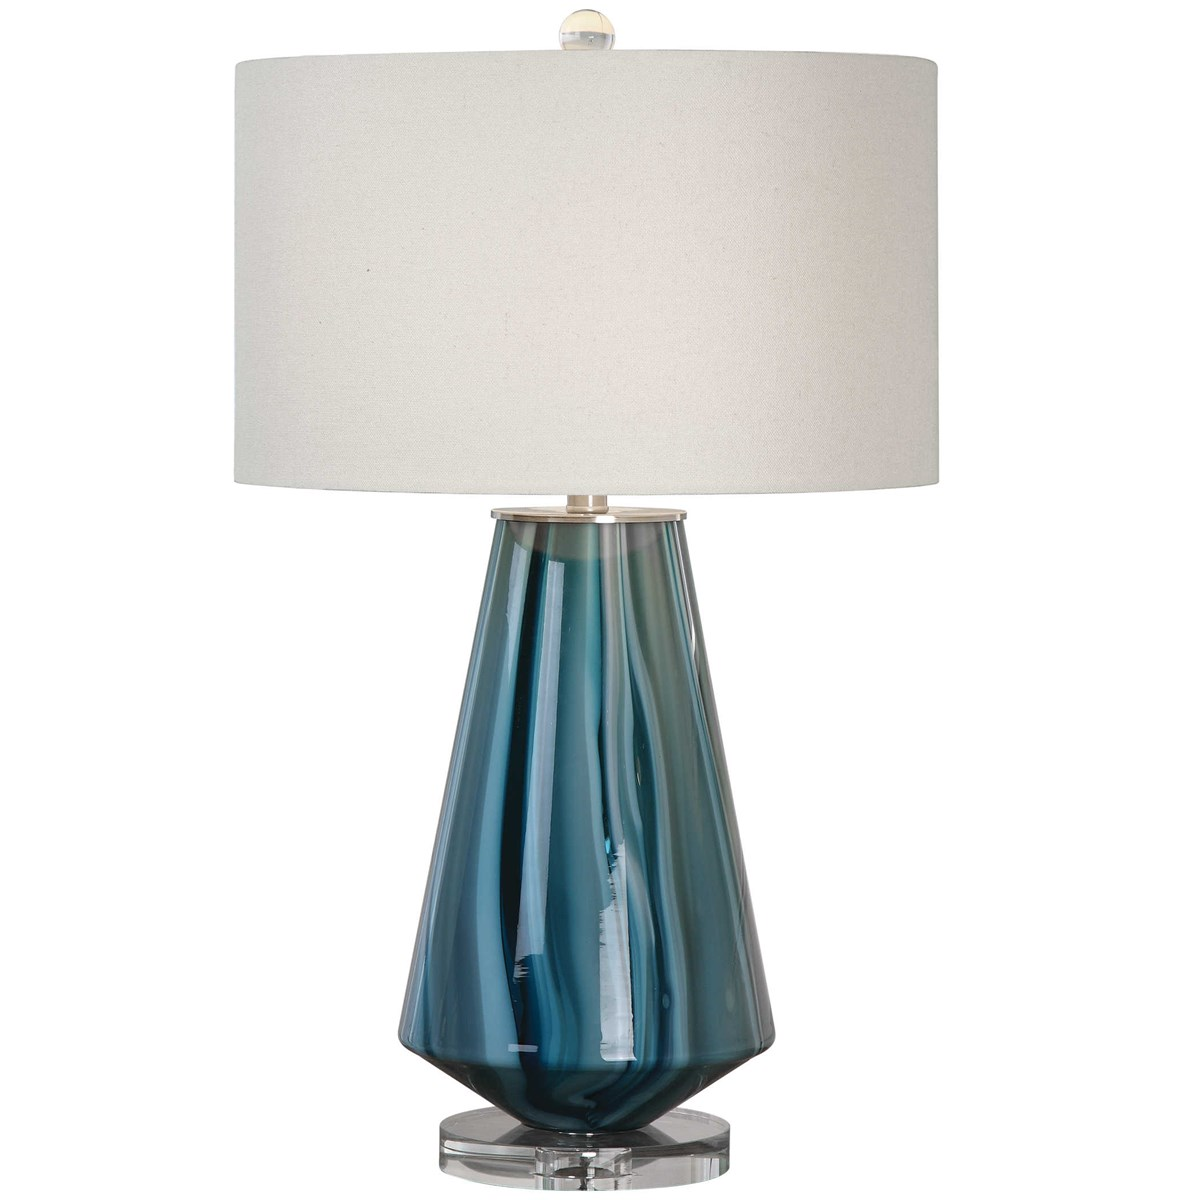 Uttermost Pescara Teal Gray Glass Lamp